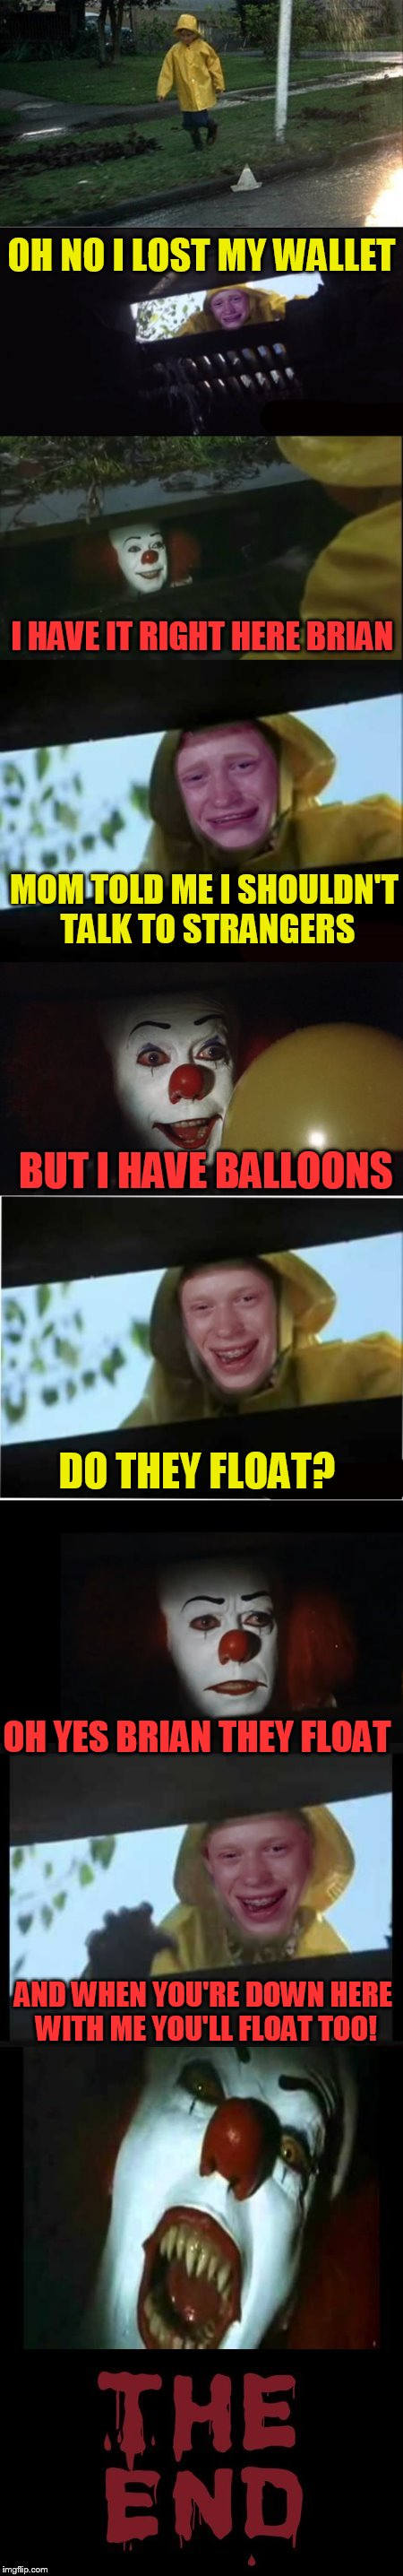 OH NO I LOST MY WALLET I HAVE IT RIGHT HERE BRIAN MOM TOLD ME I SHOULDN'T TALK TO STRANGERS BUT I HAVE BALLOONS DO THEY FLOAT? OH YES BRIAN  | image tagged in penny brian | made w/ Imgflip meme maker